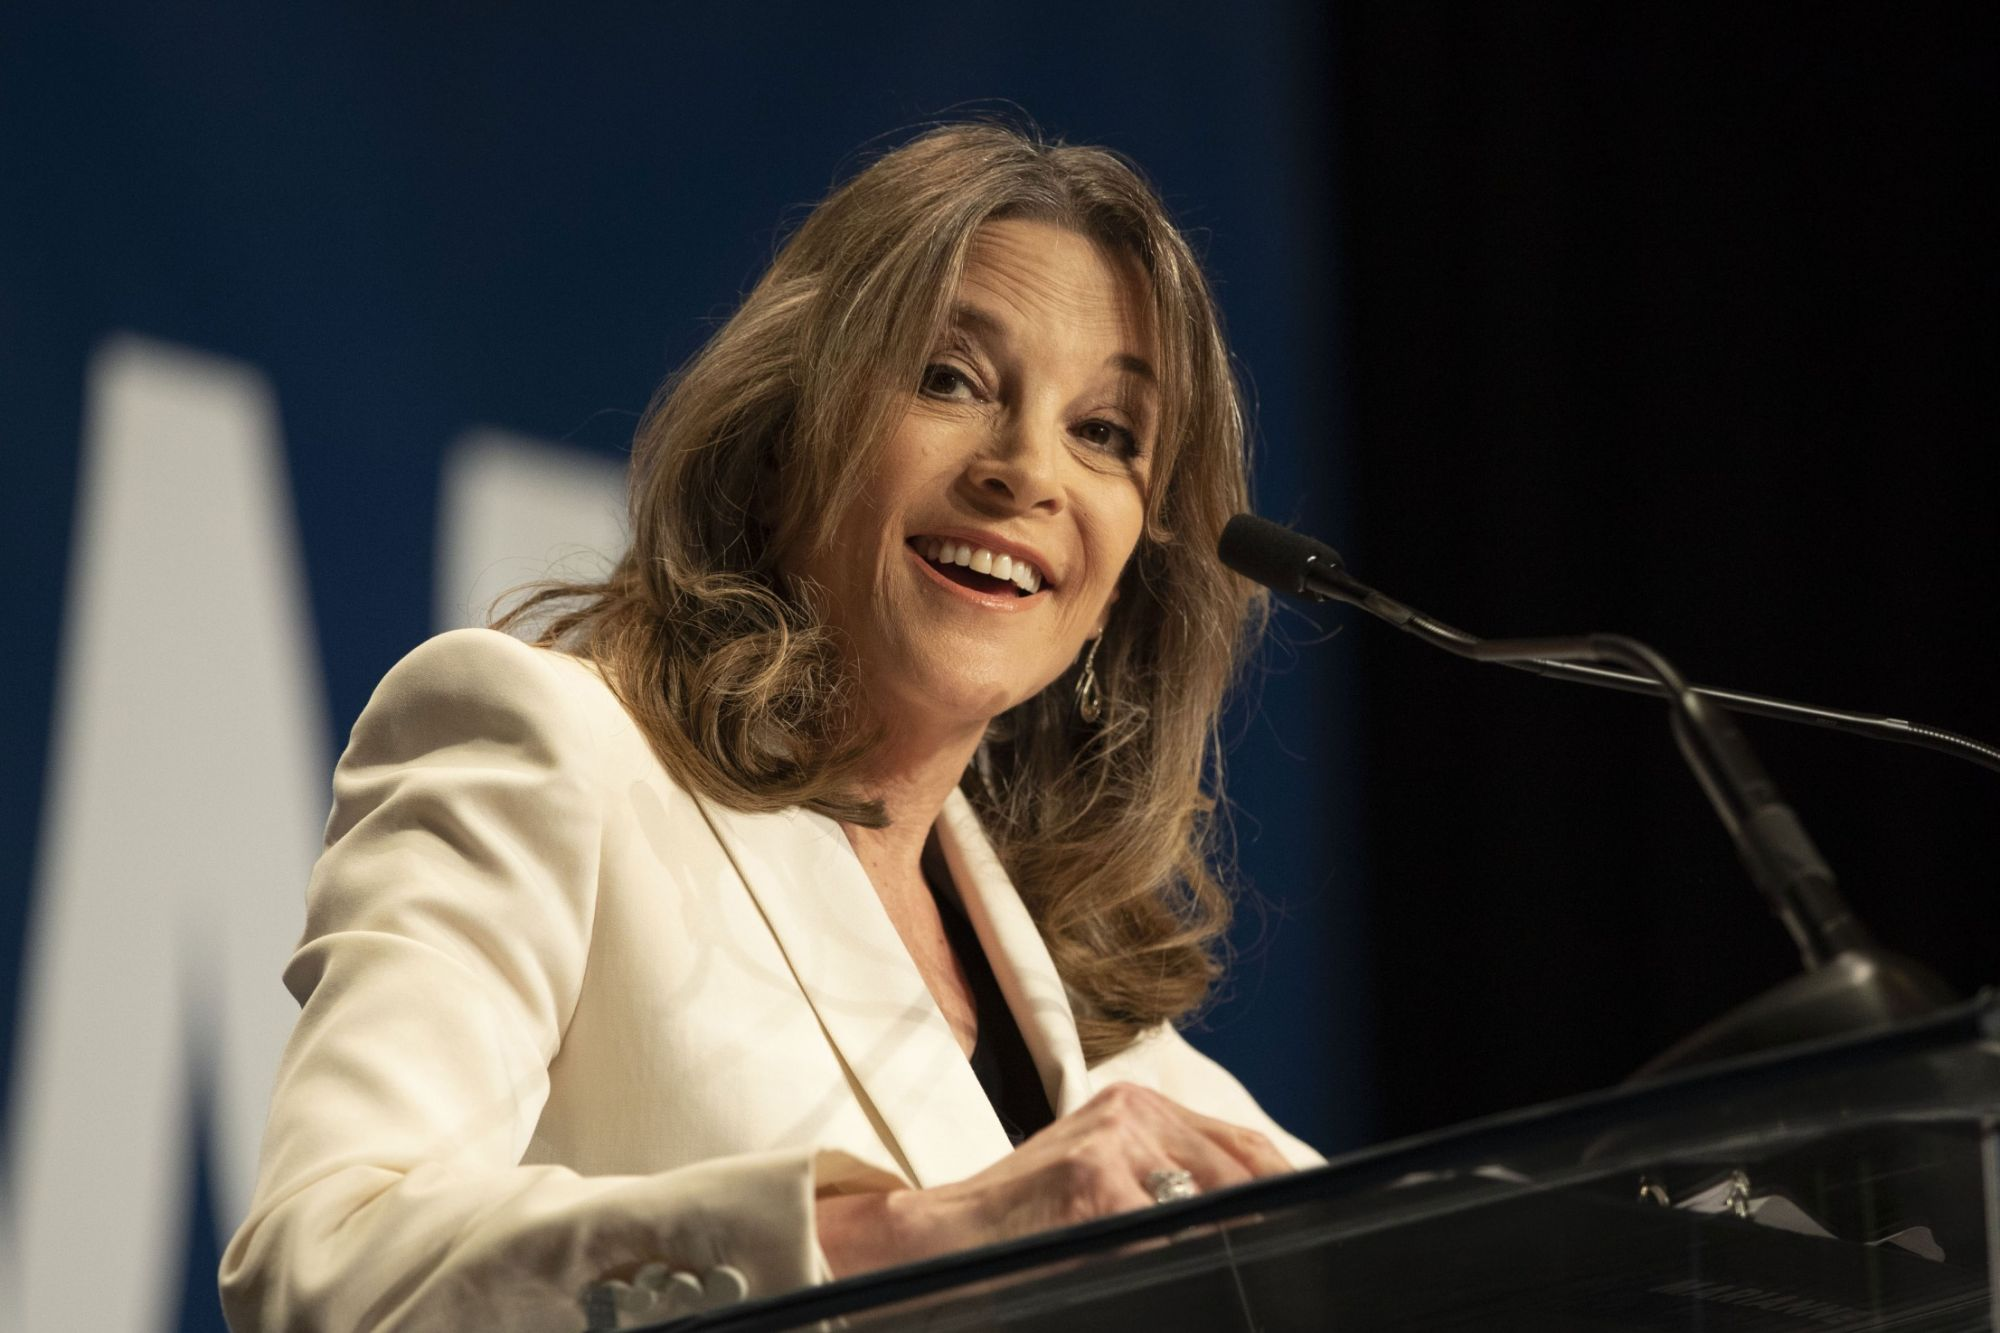 Marianne Williamson May Seem a Little Bananas, but She's Right to Focus on Food Issues